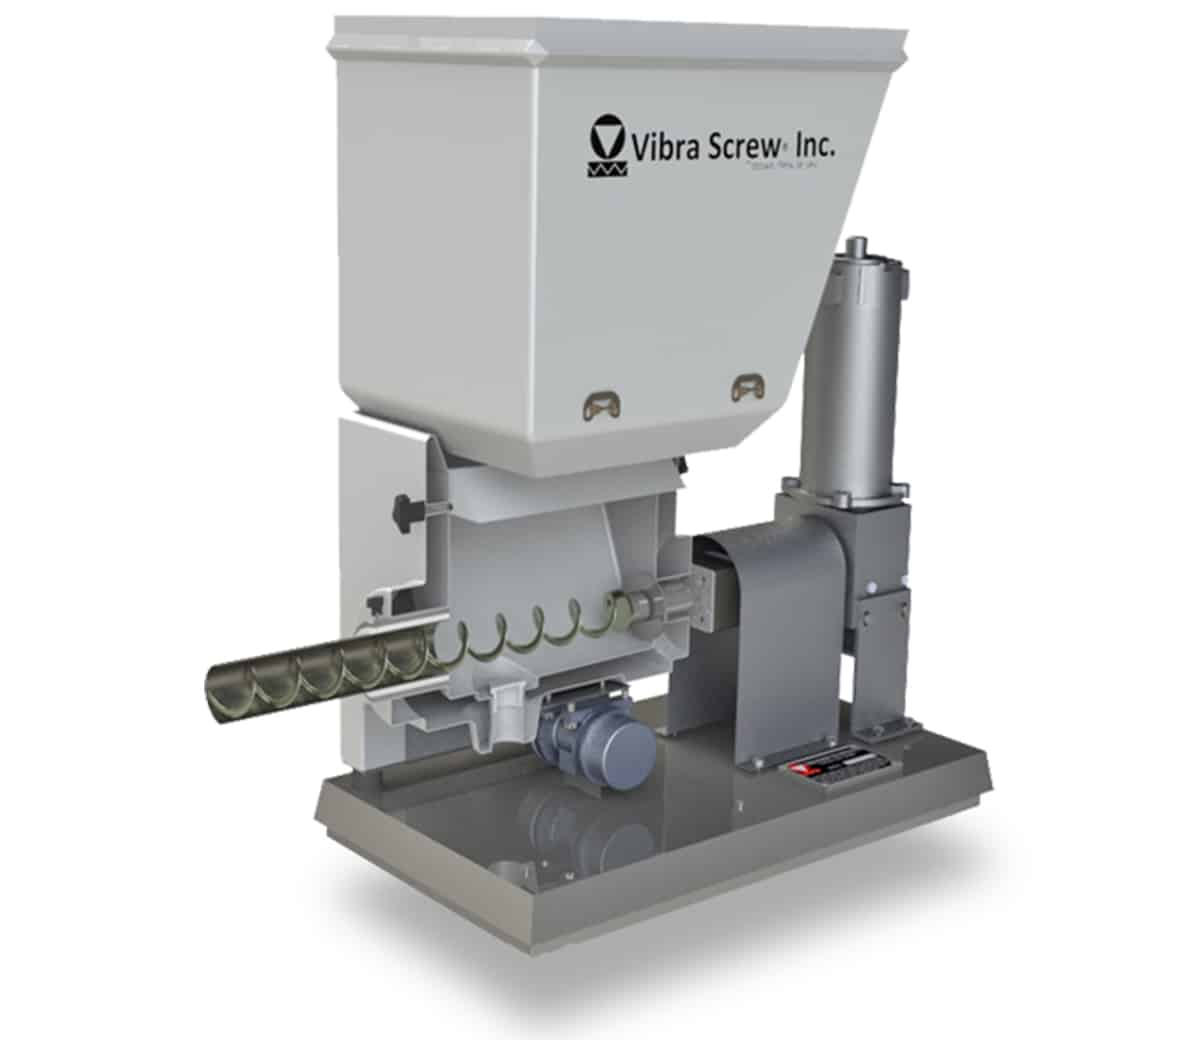 Vibra Screw Sanitary AccuFeed™ Composite Feeder Features Loss-in-Weight Accuracy